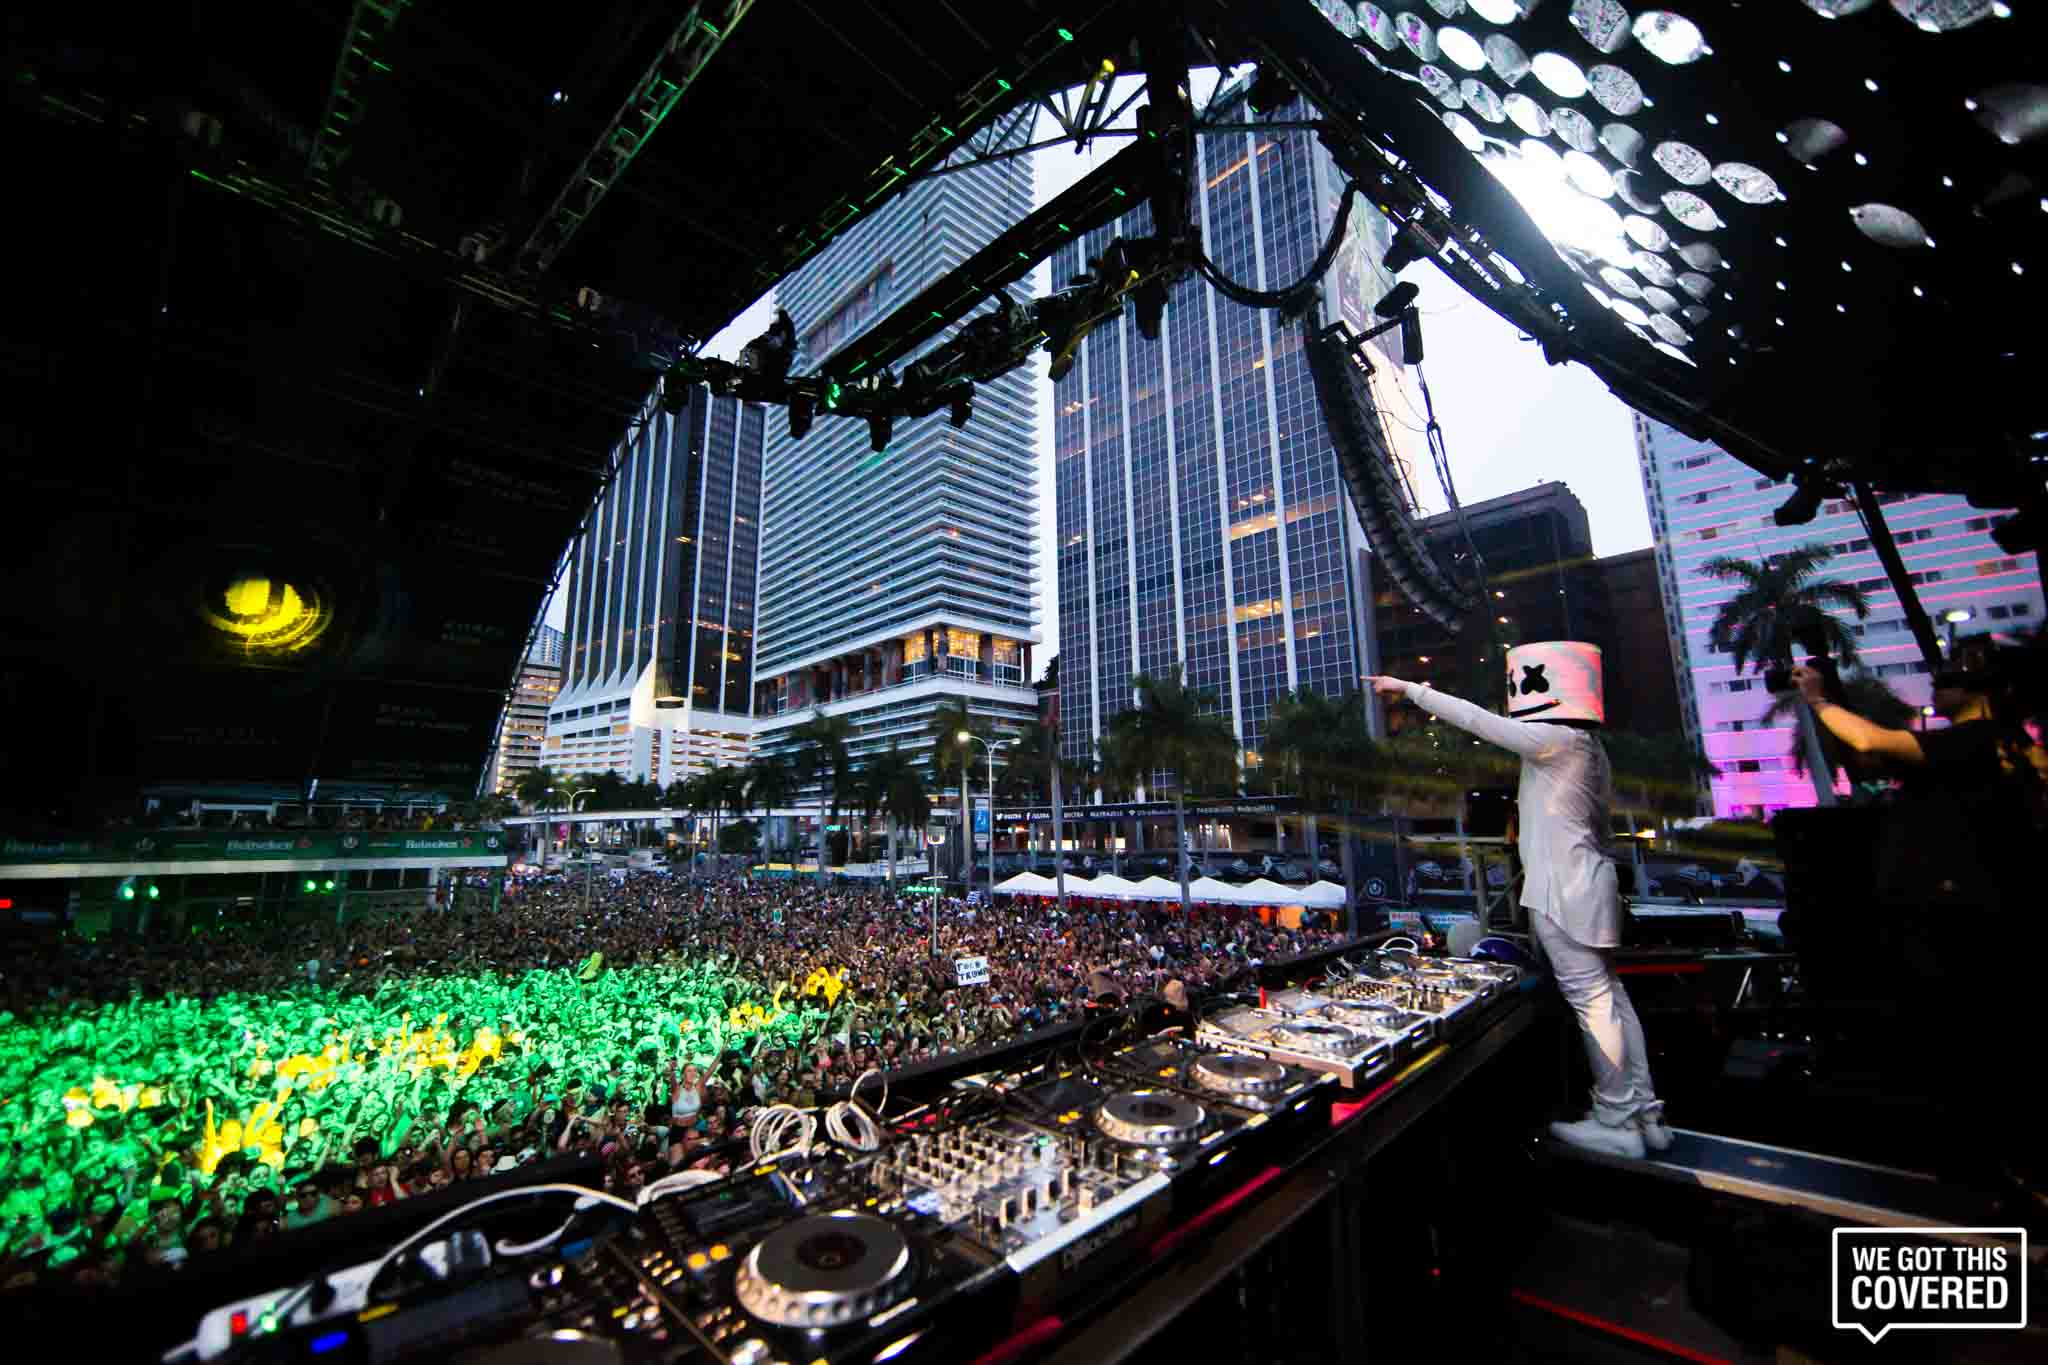 Gallery: Ultra Music Festival 2016 - Day 3